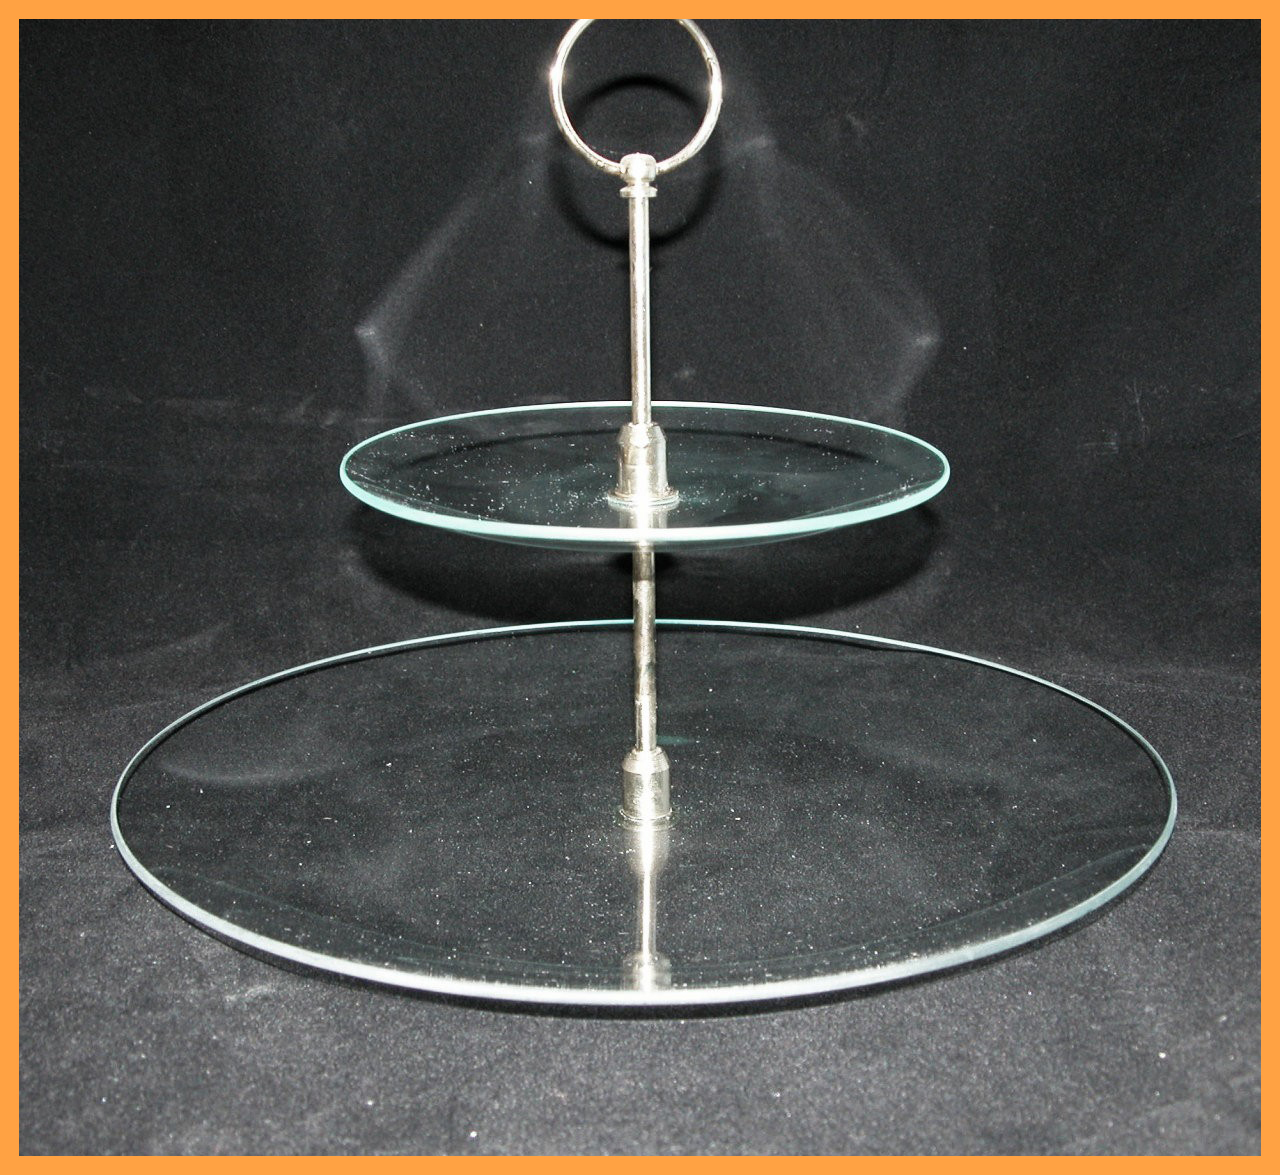 2 Piece Tray Set - 8